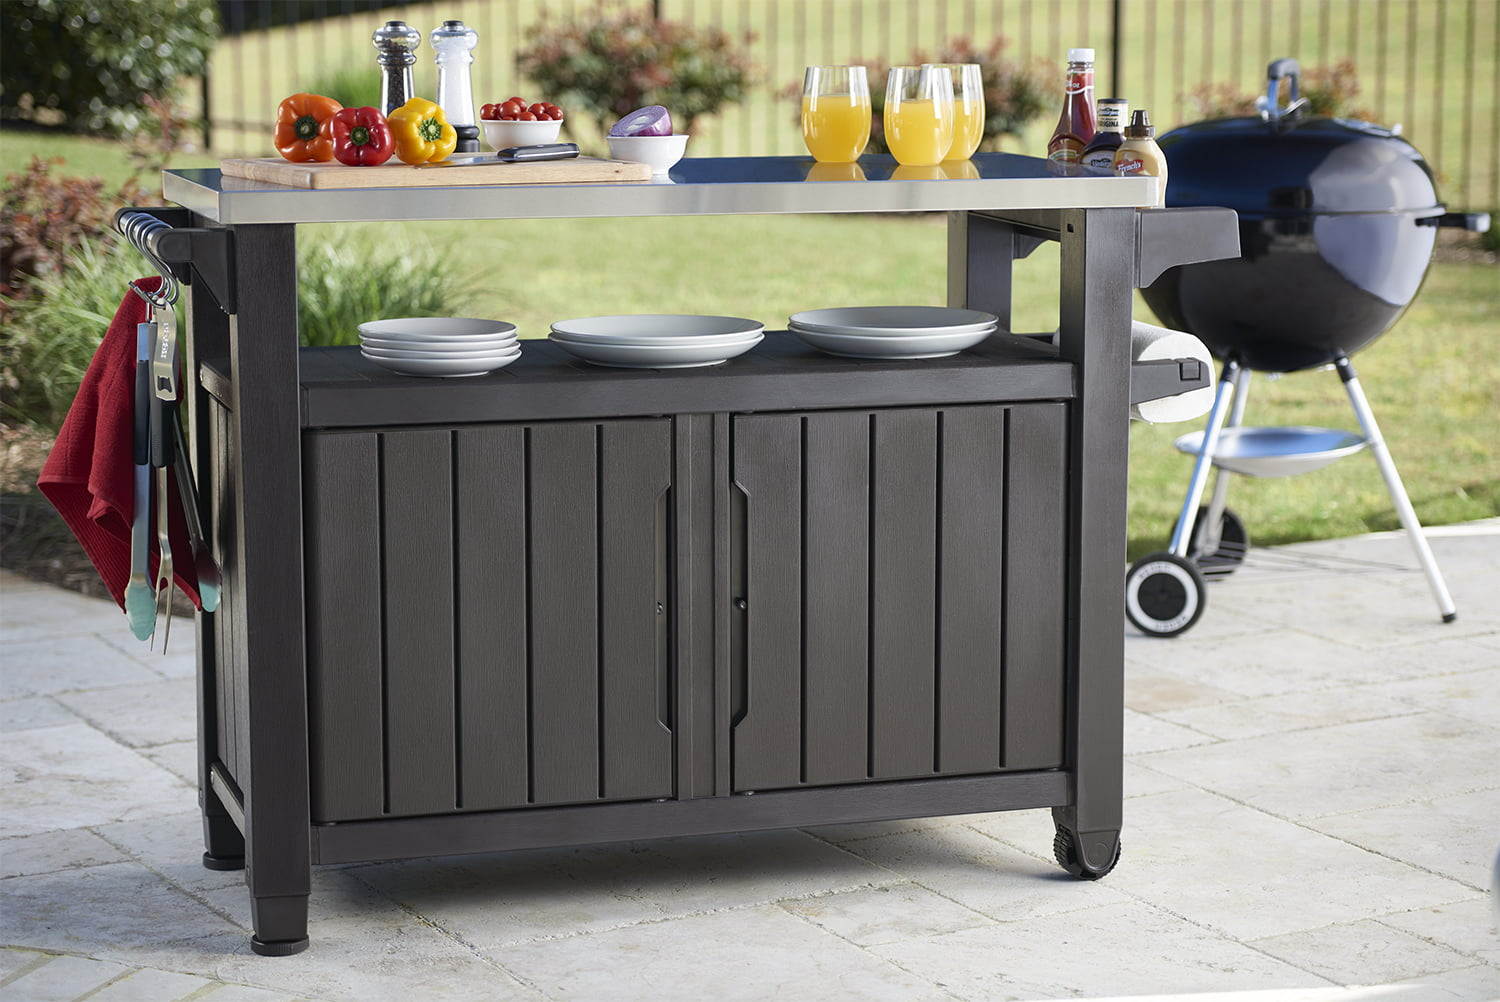 Keter Unity XL Resin Serving Station, All-Weather Plastic ...